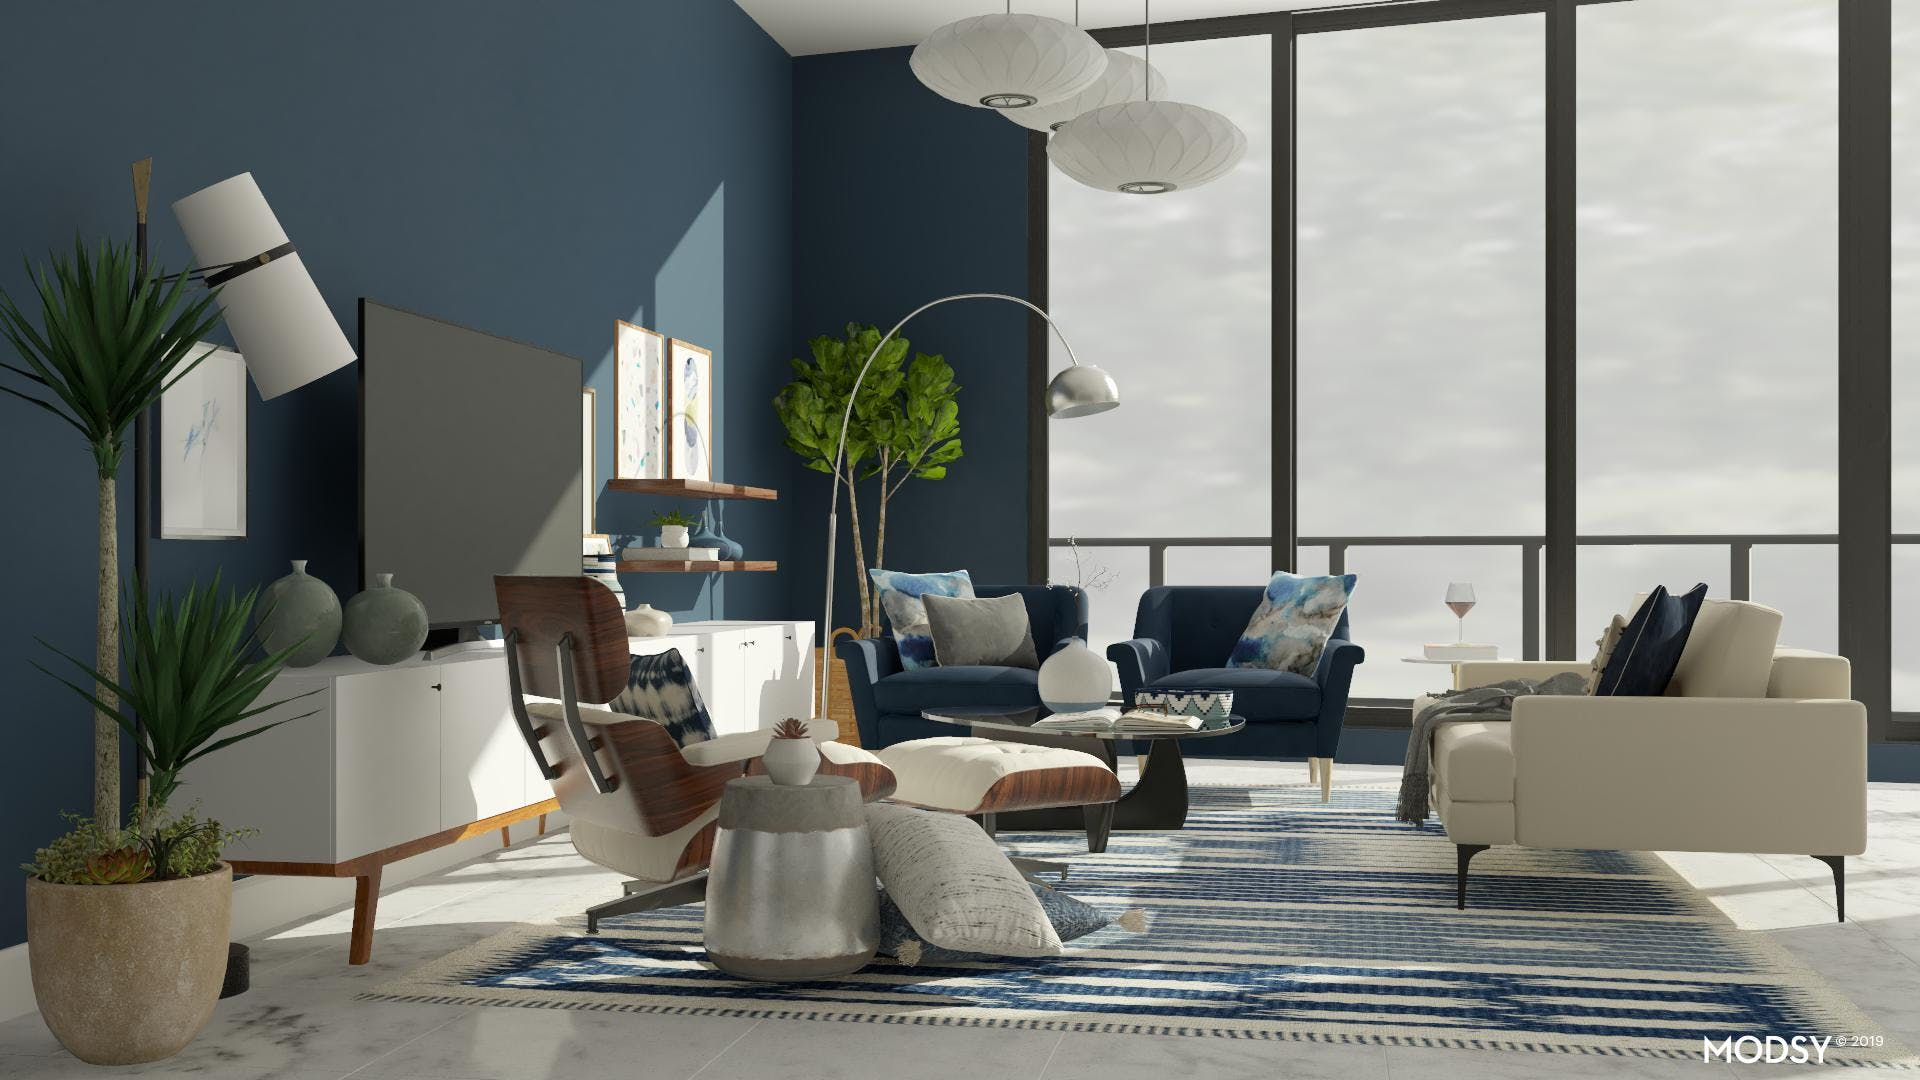 Creating Contrast In A Mid-Century Modern Living Room